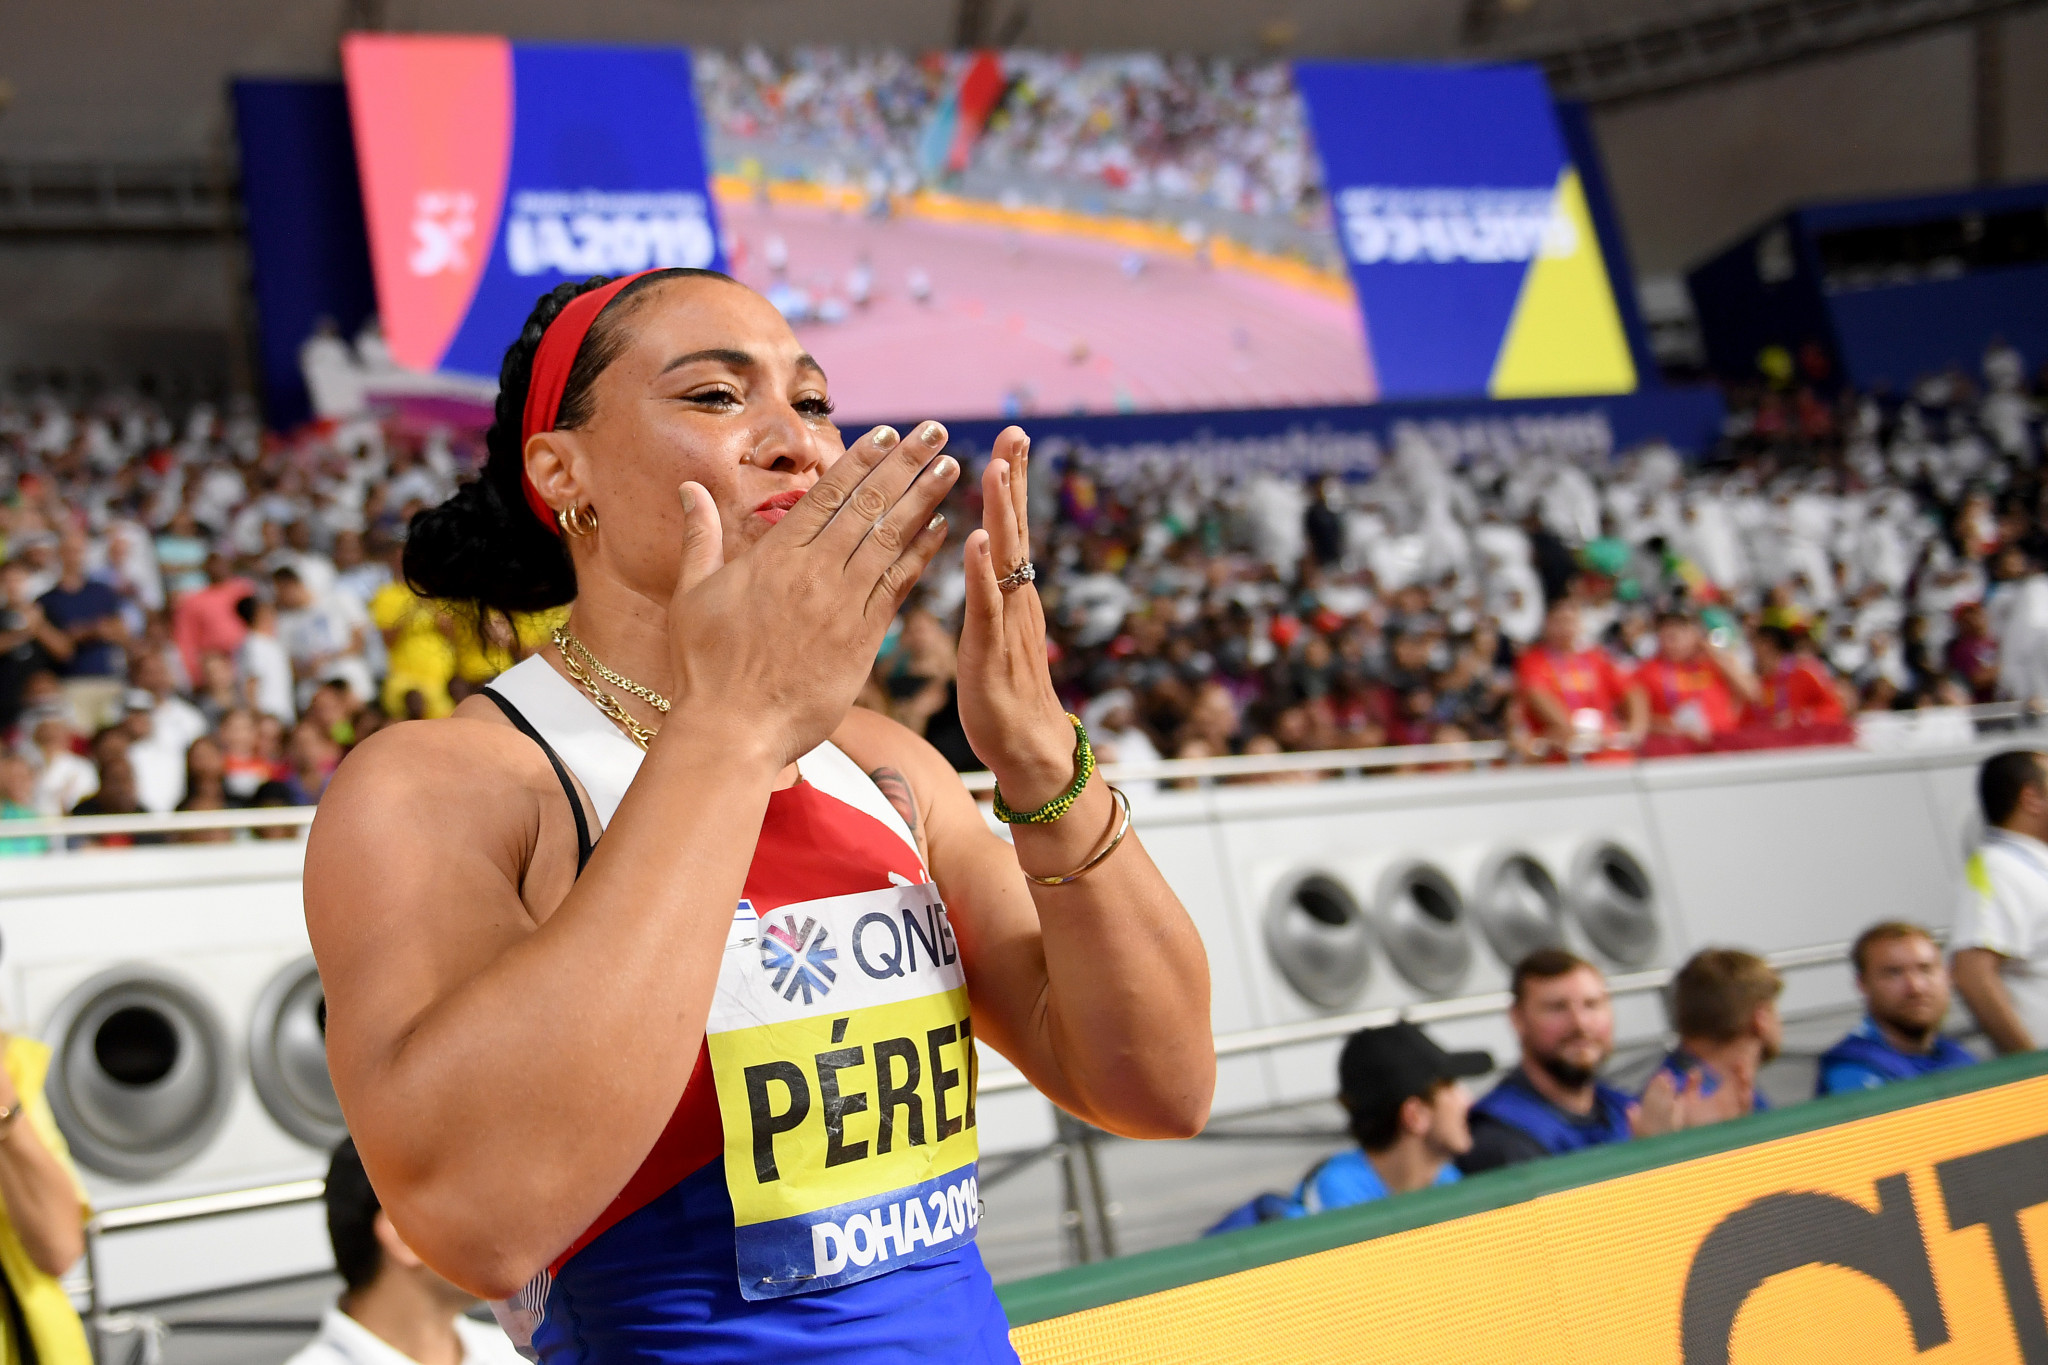 Cuba's Yaime Perez beat her compatriot Denia Caballero to win the women's discus ©Getty Images